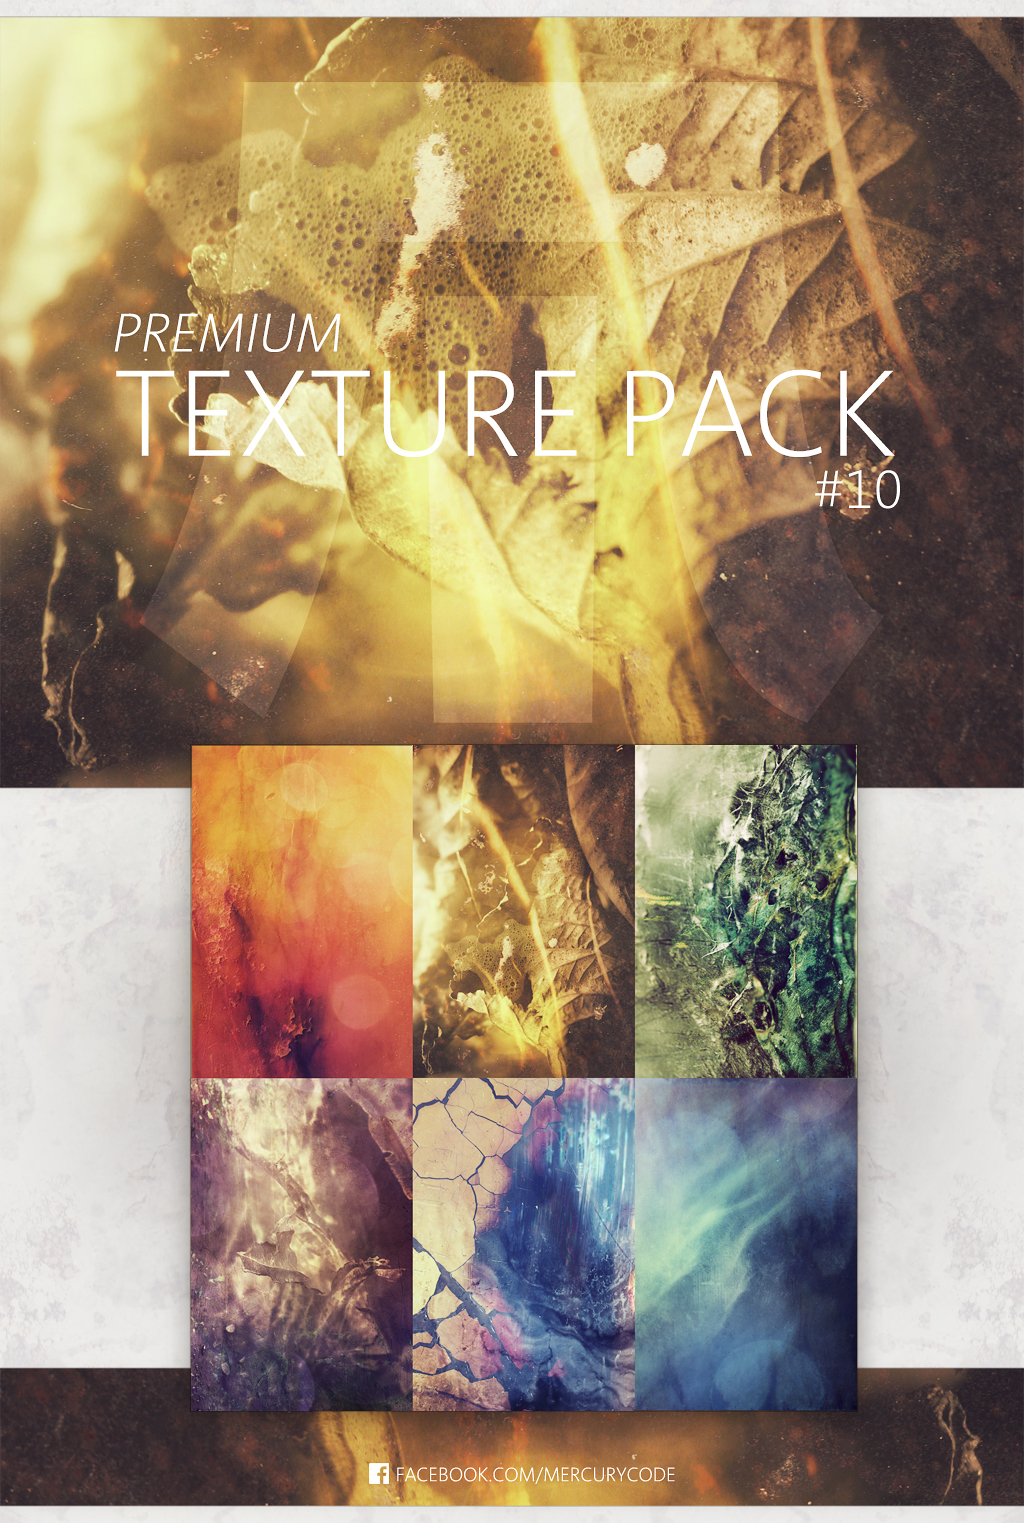 Premium Texture Pack #10 | Transition by mercurycode